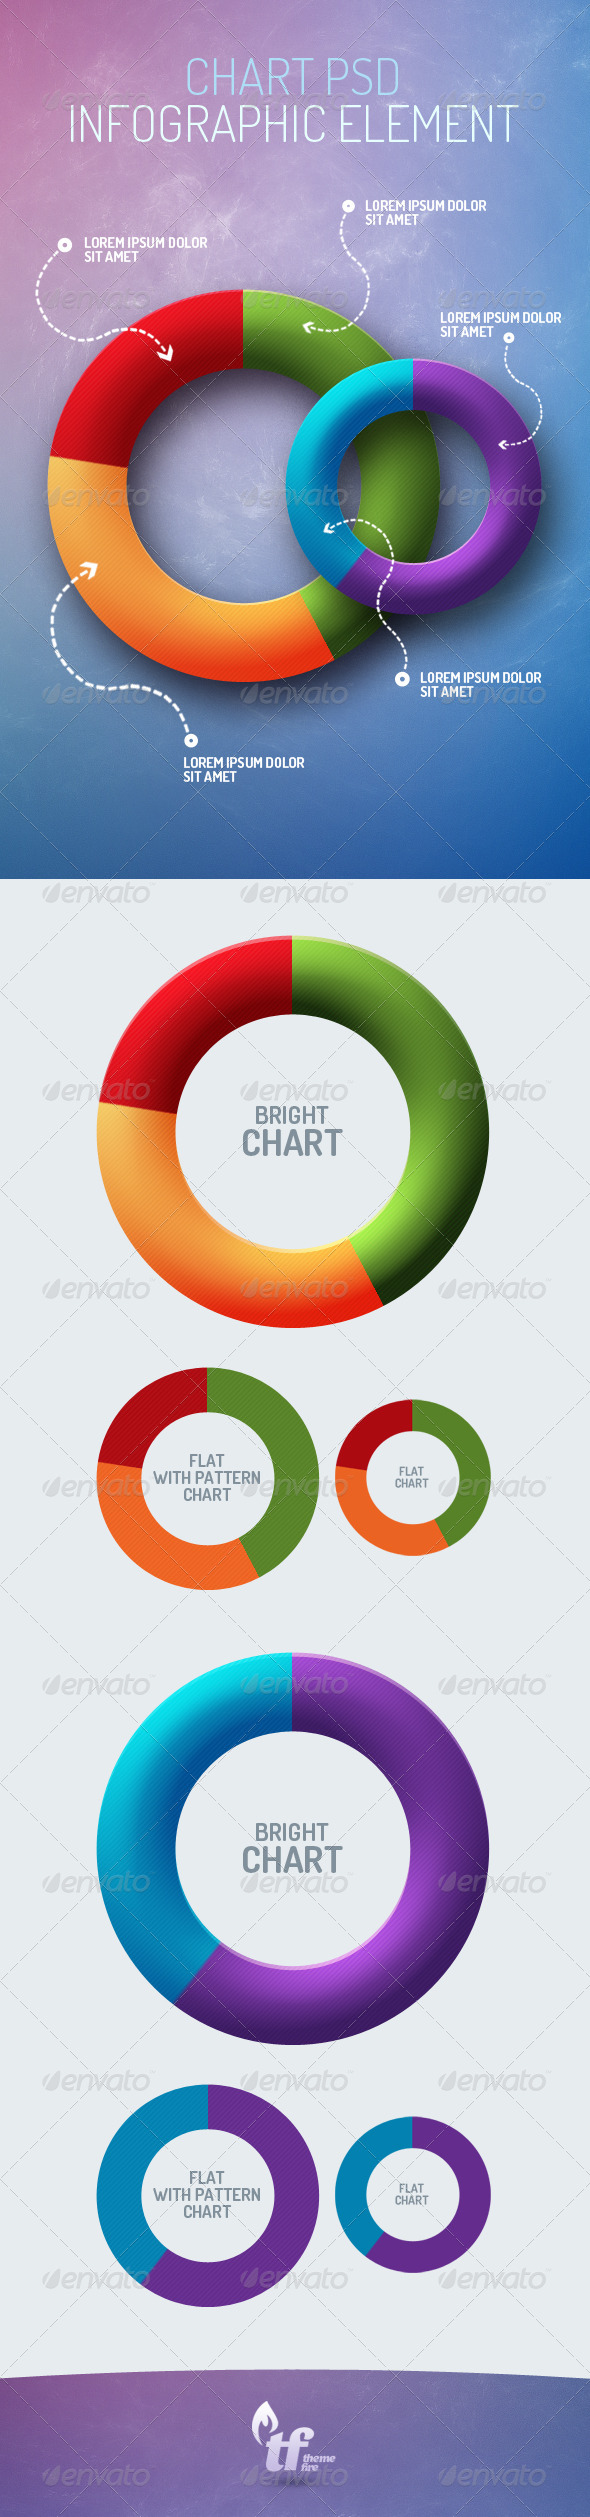 GraphicRiver Pie Chart Infographic Element PSD 6387888